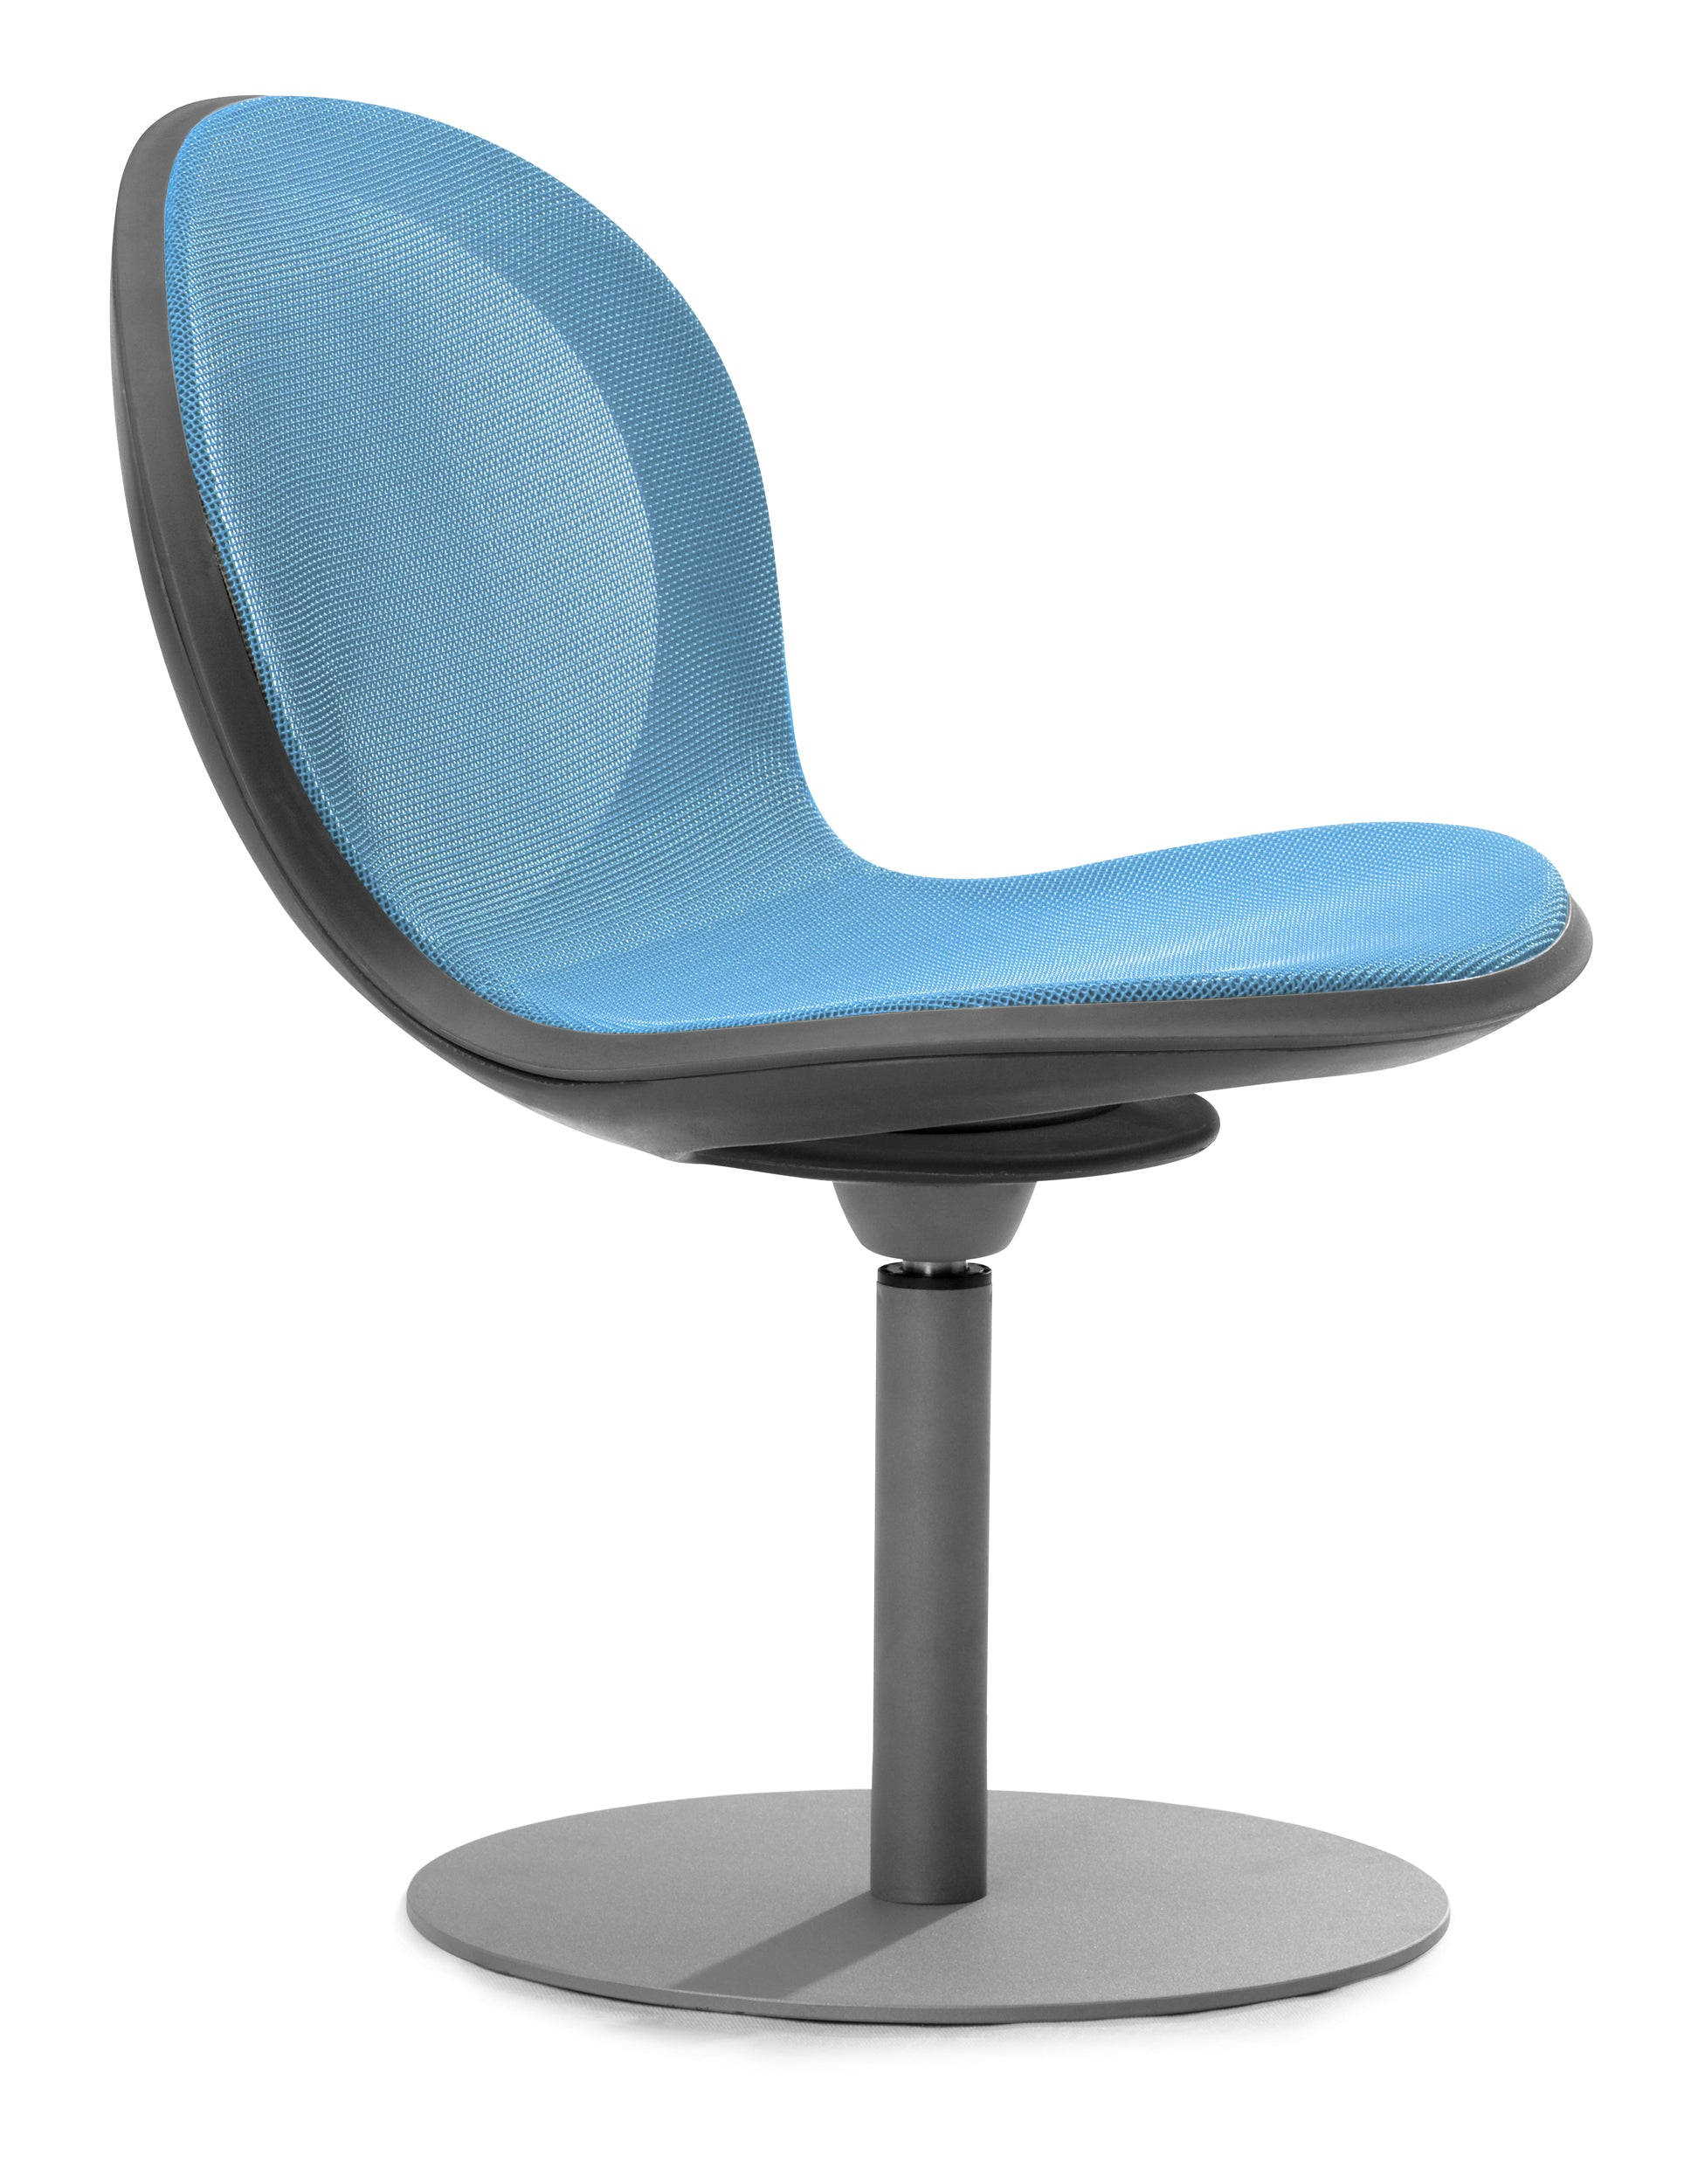 Ofminc Model N101-NET Series Swivel Chair